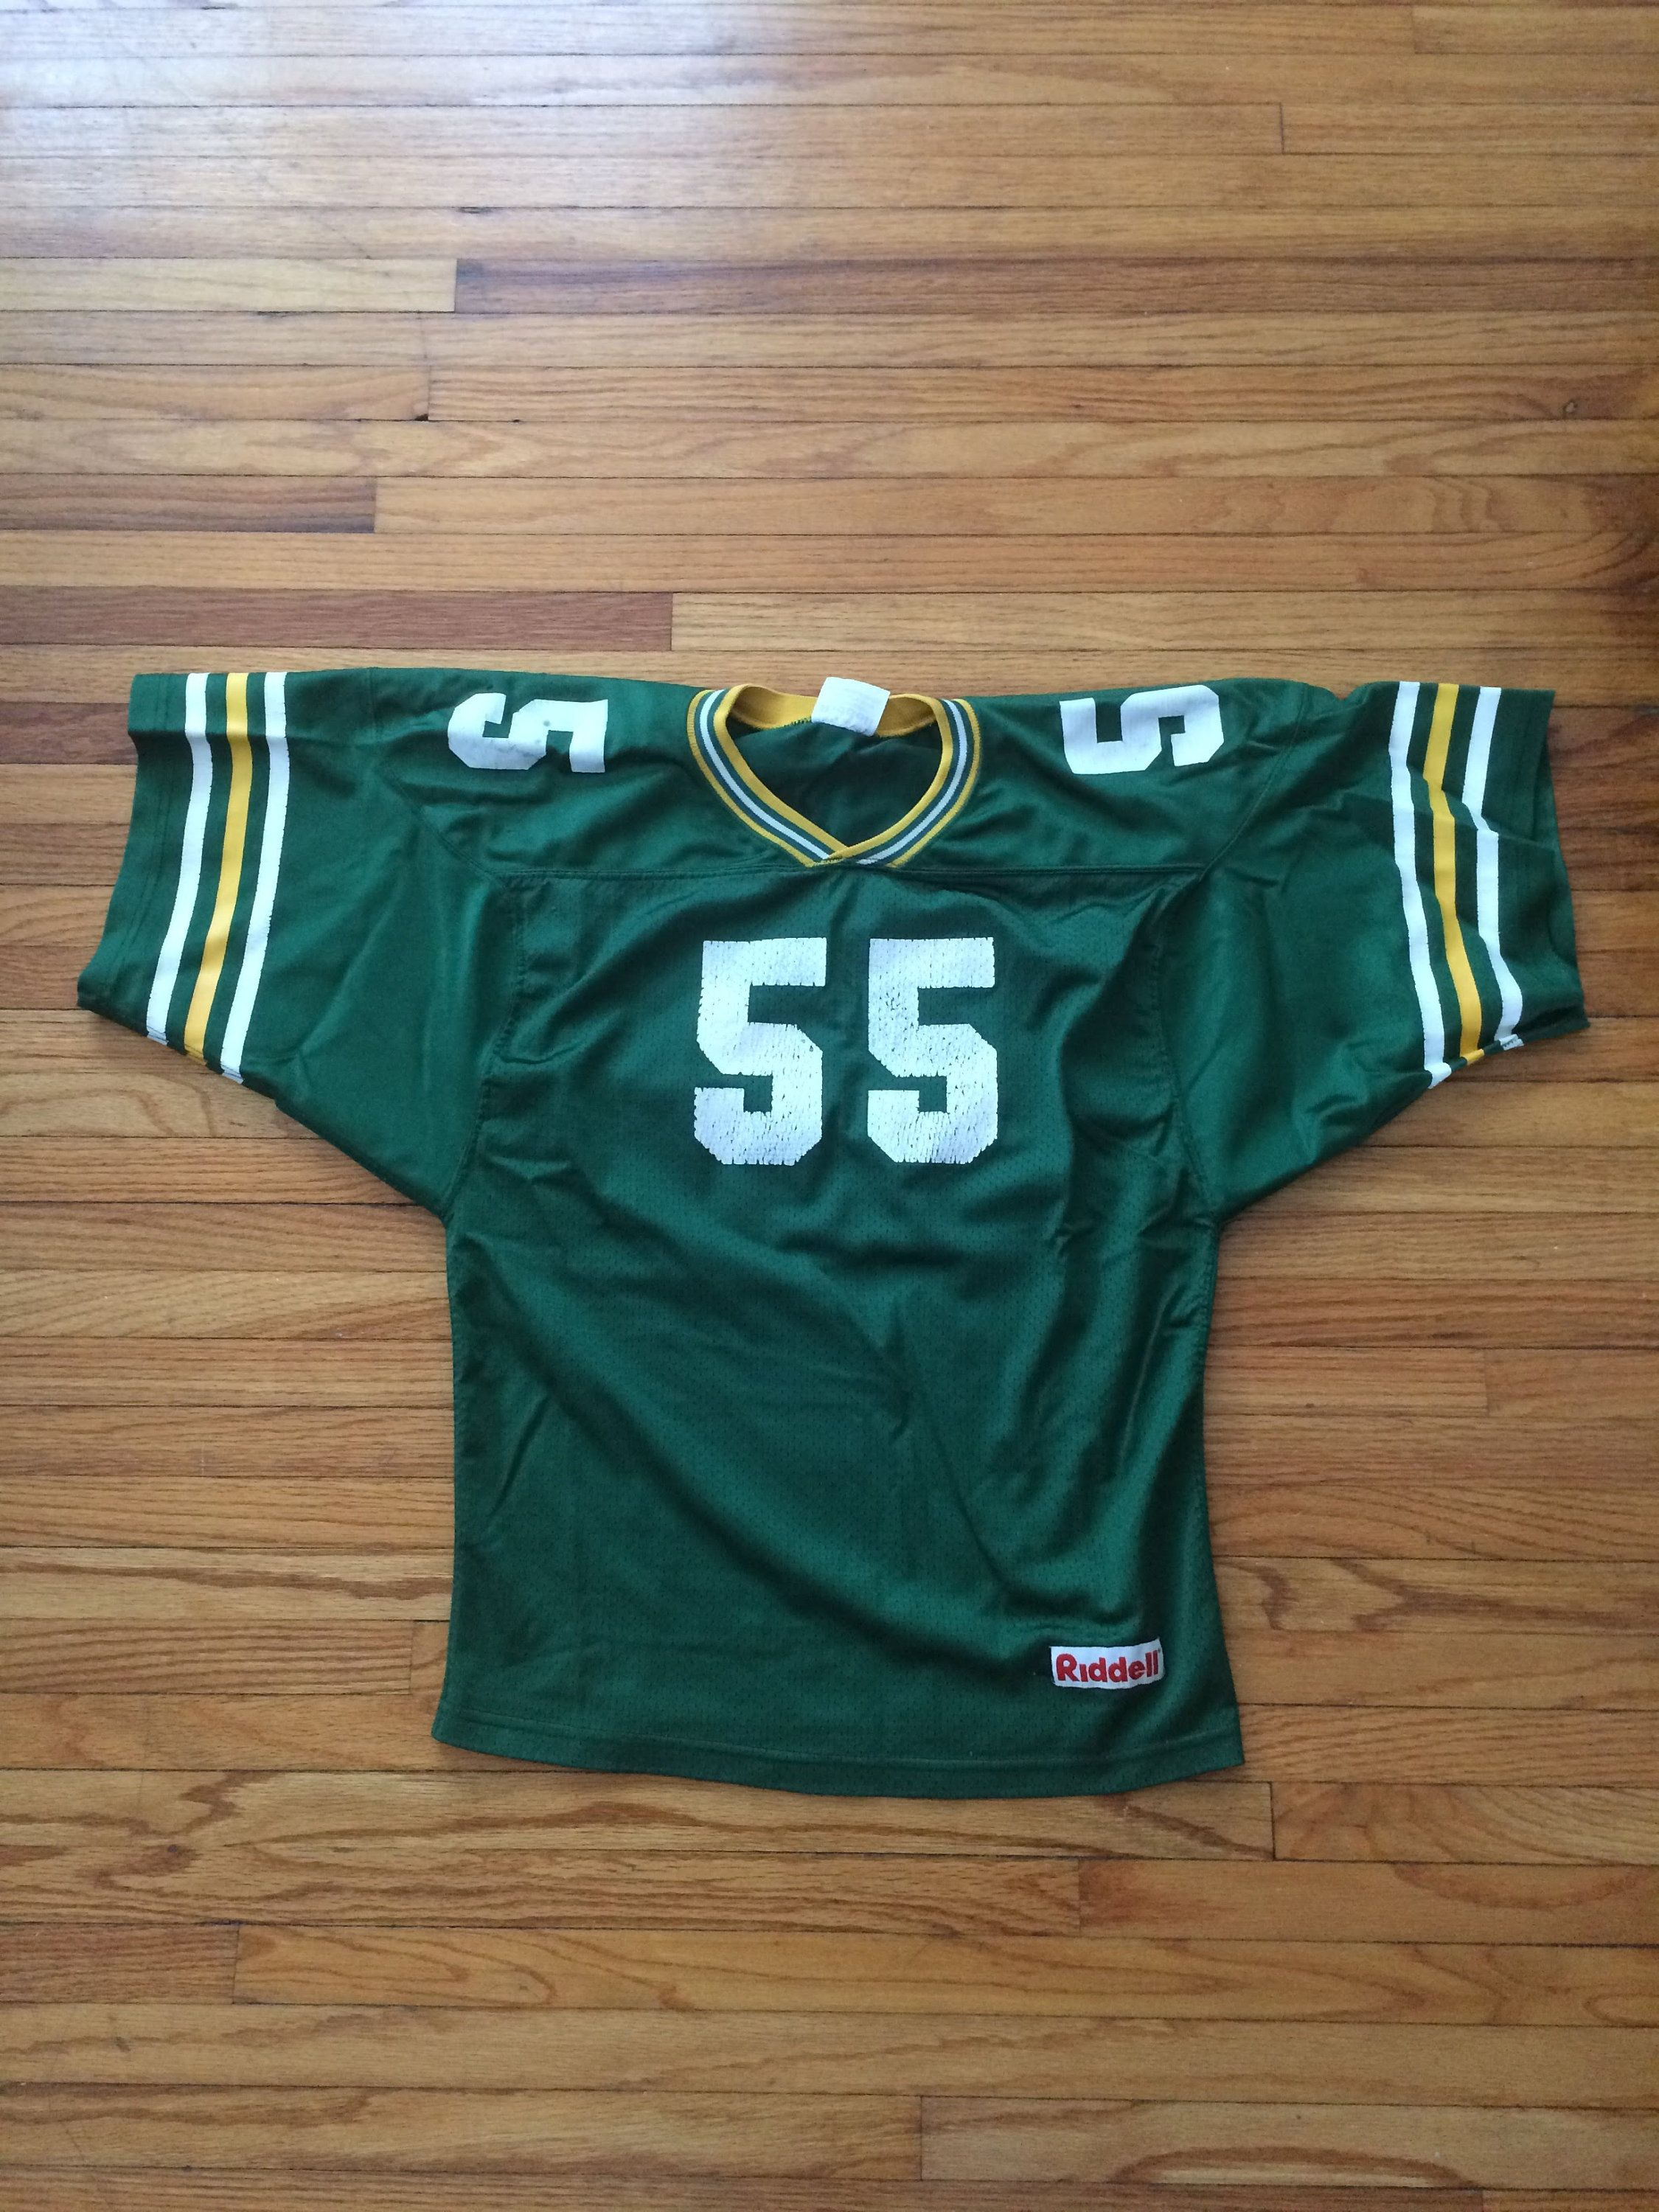 quality design 7c4cd 79618 Vintage Riddell Green Bay Packers Colorway Football Jersey ...